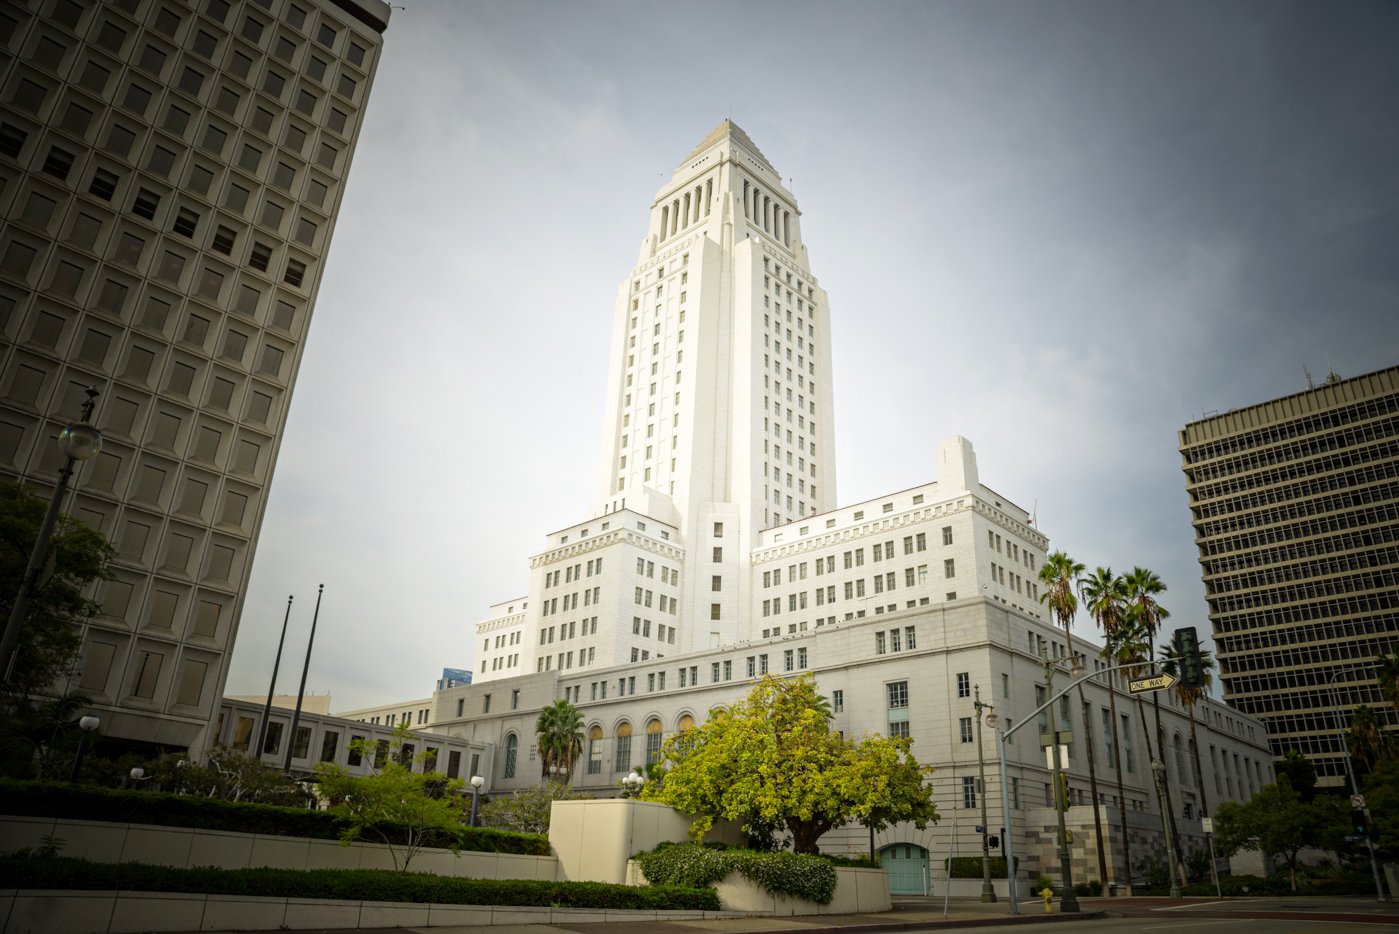 East Los Angeles Town Hall